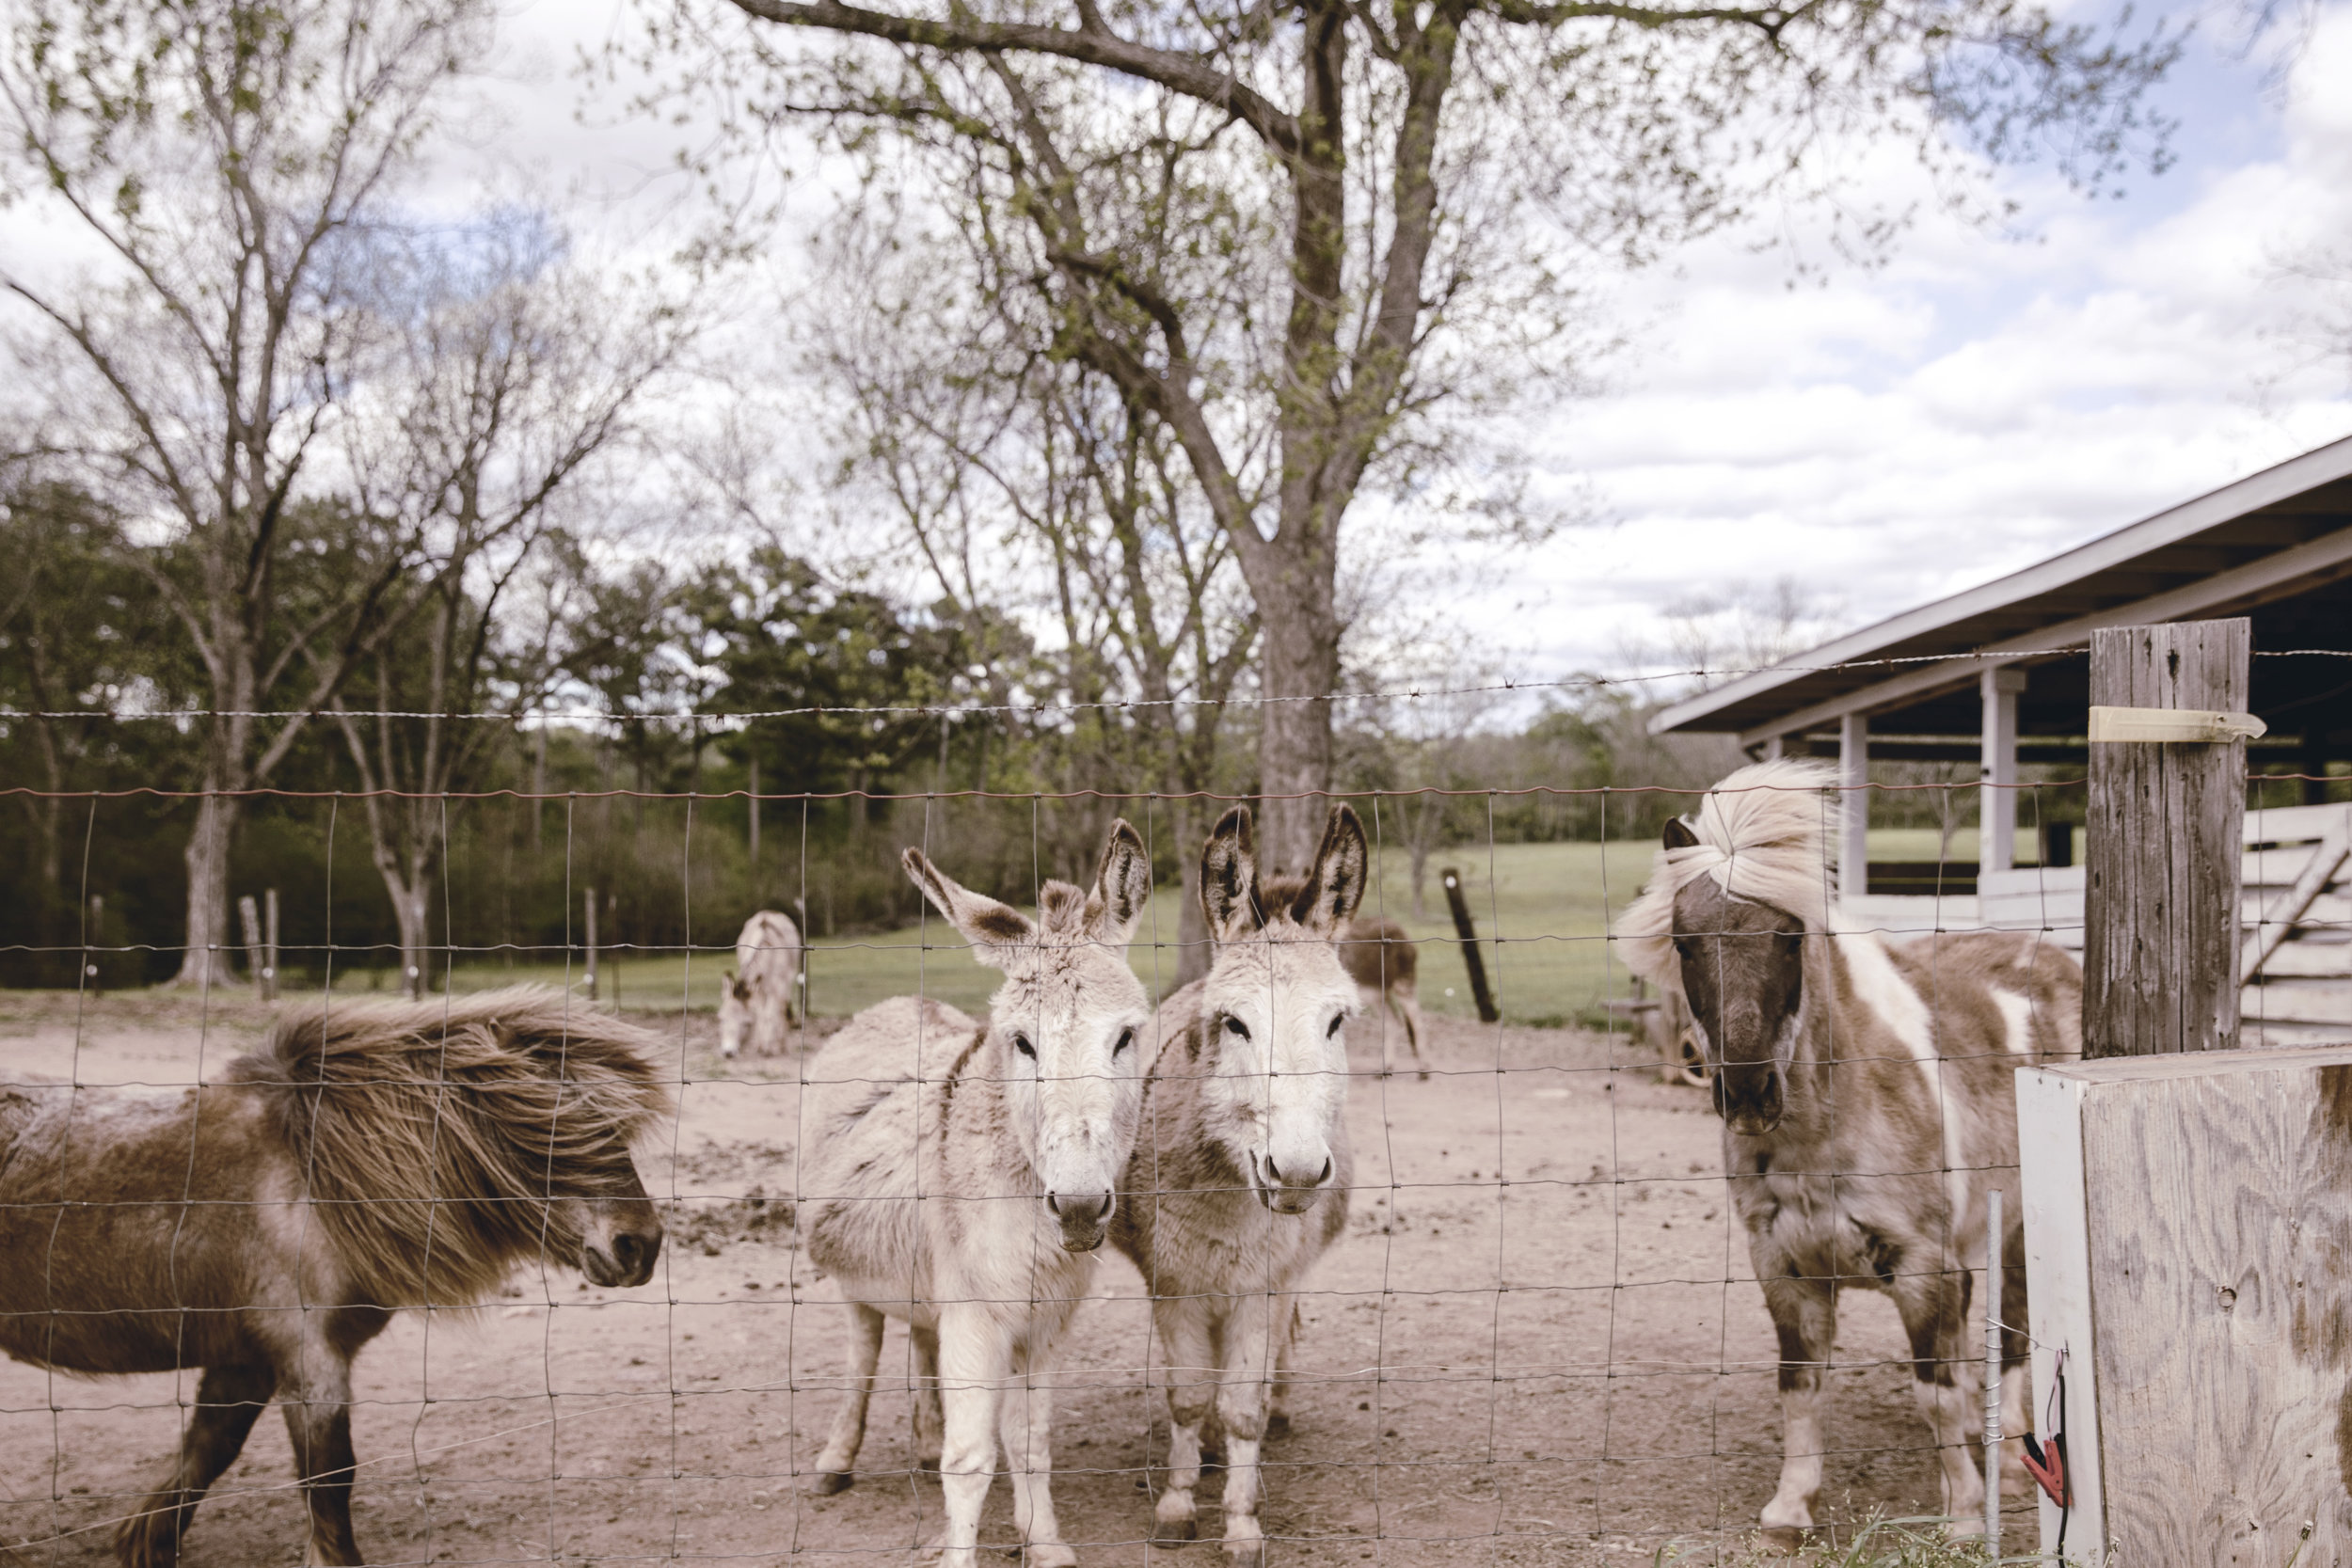 donkeys and ponies at the family farm / heirloomed